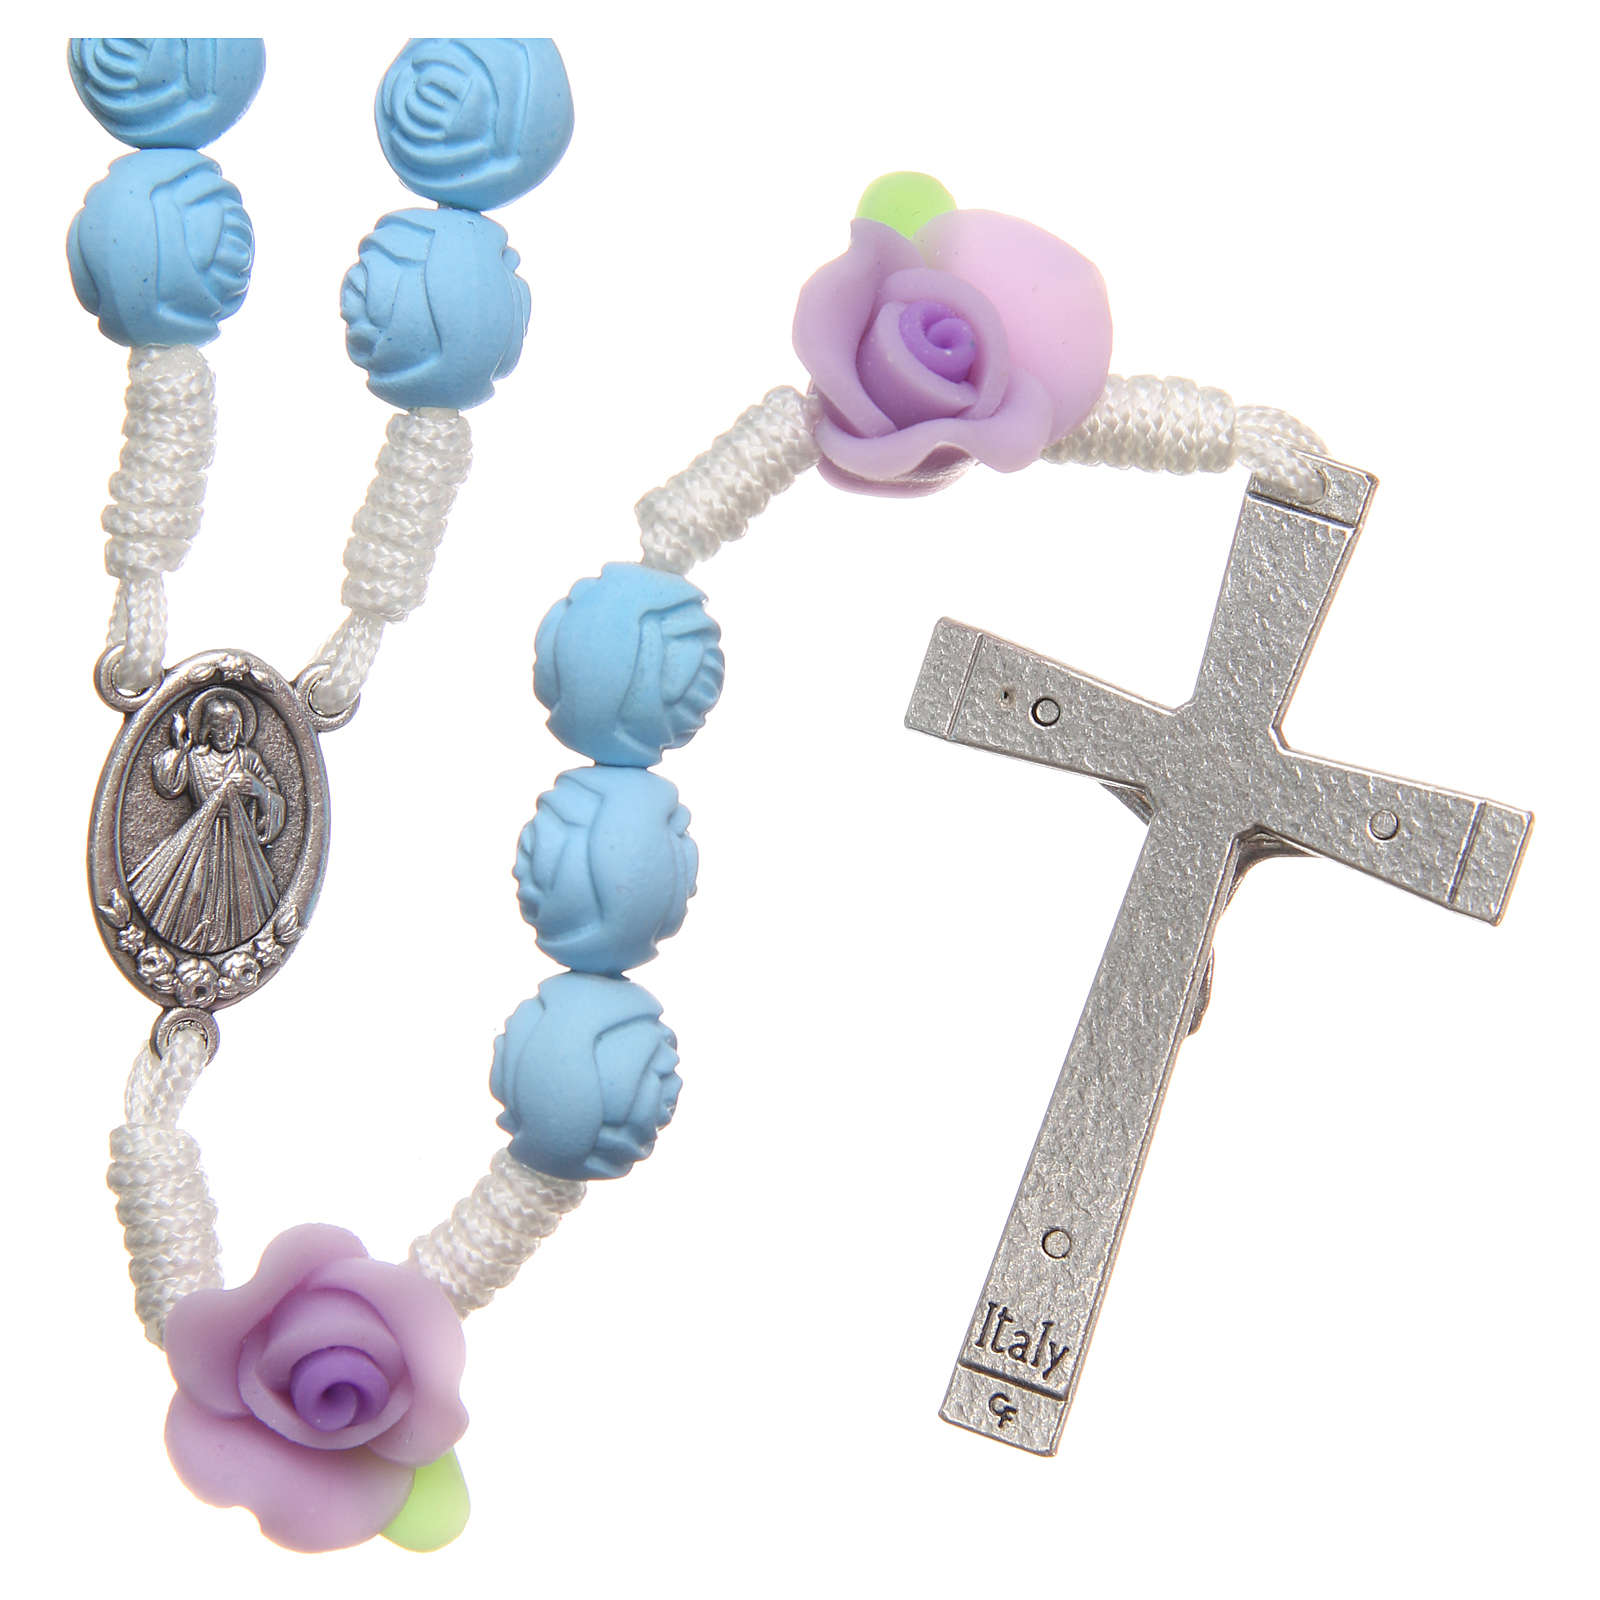 Medjugorje rosary beads with light blue roses 4